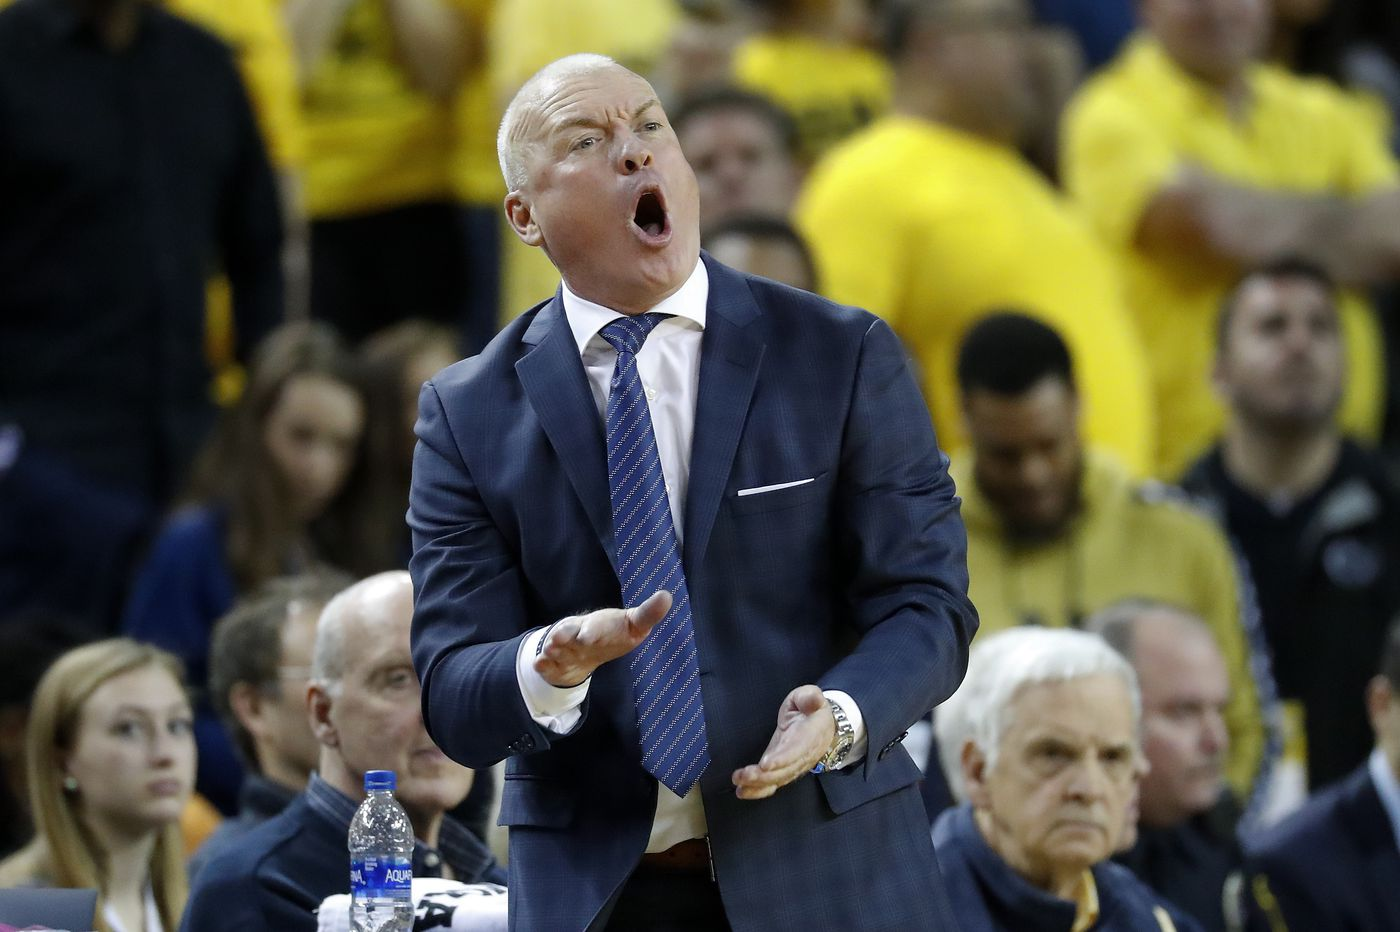 Penn State basketball coach Pat Chambers apologizes after appearing to shove Myles Dread